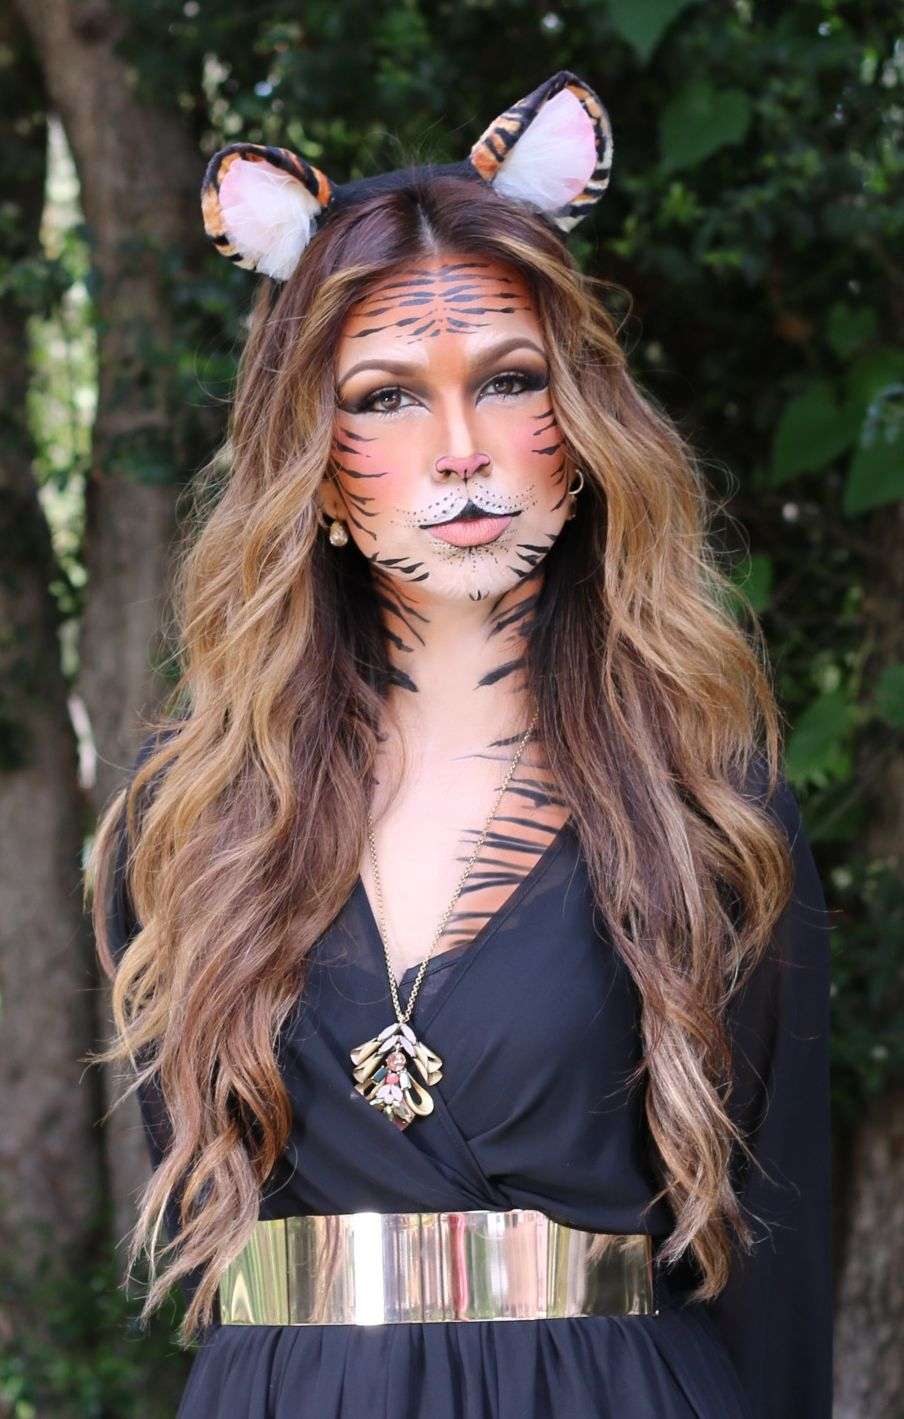 Tiger Face - Tiger Costume | Halloween Fun | Pinterest | Tiger Costume Tiger Face And Tigers